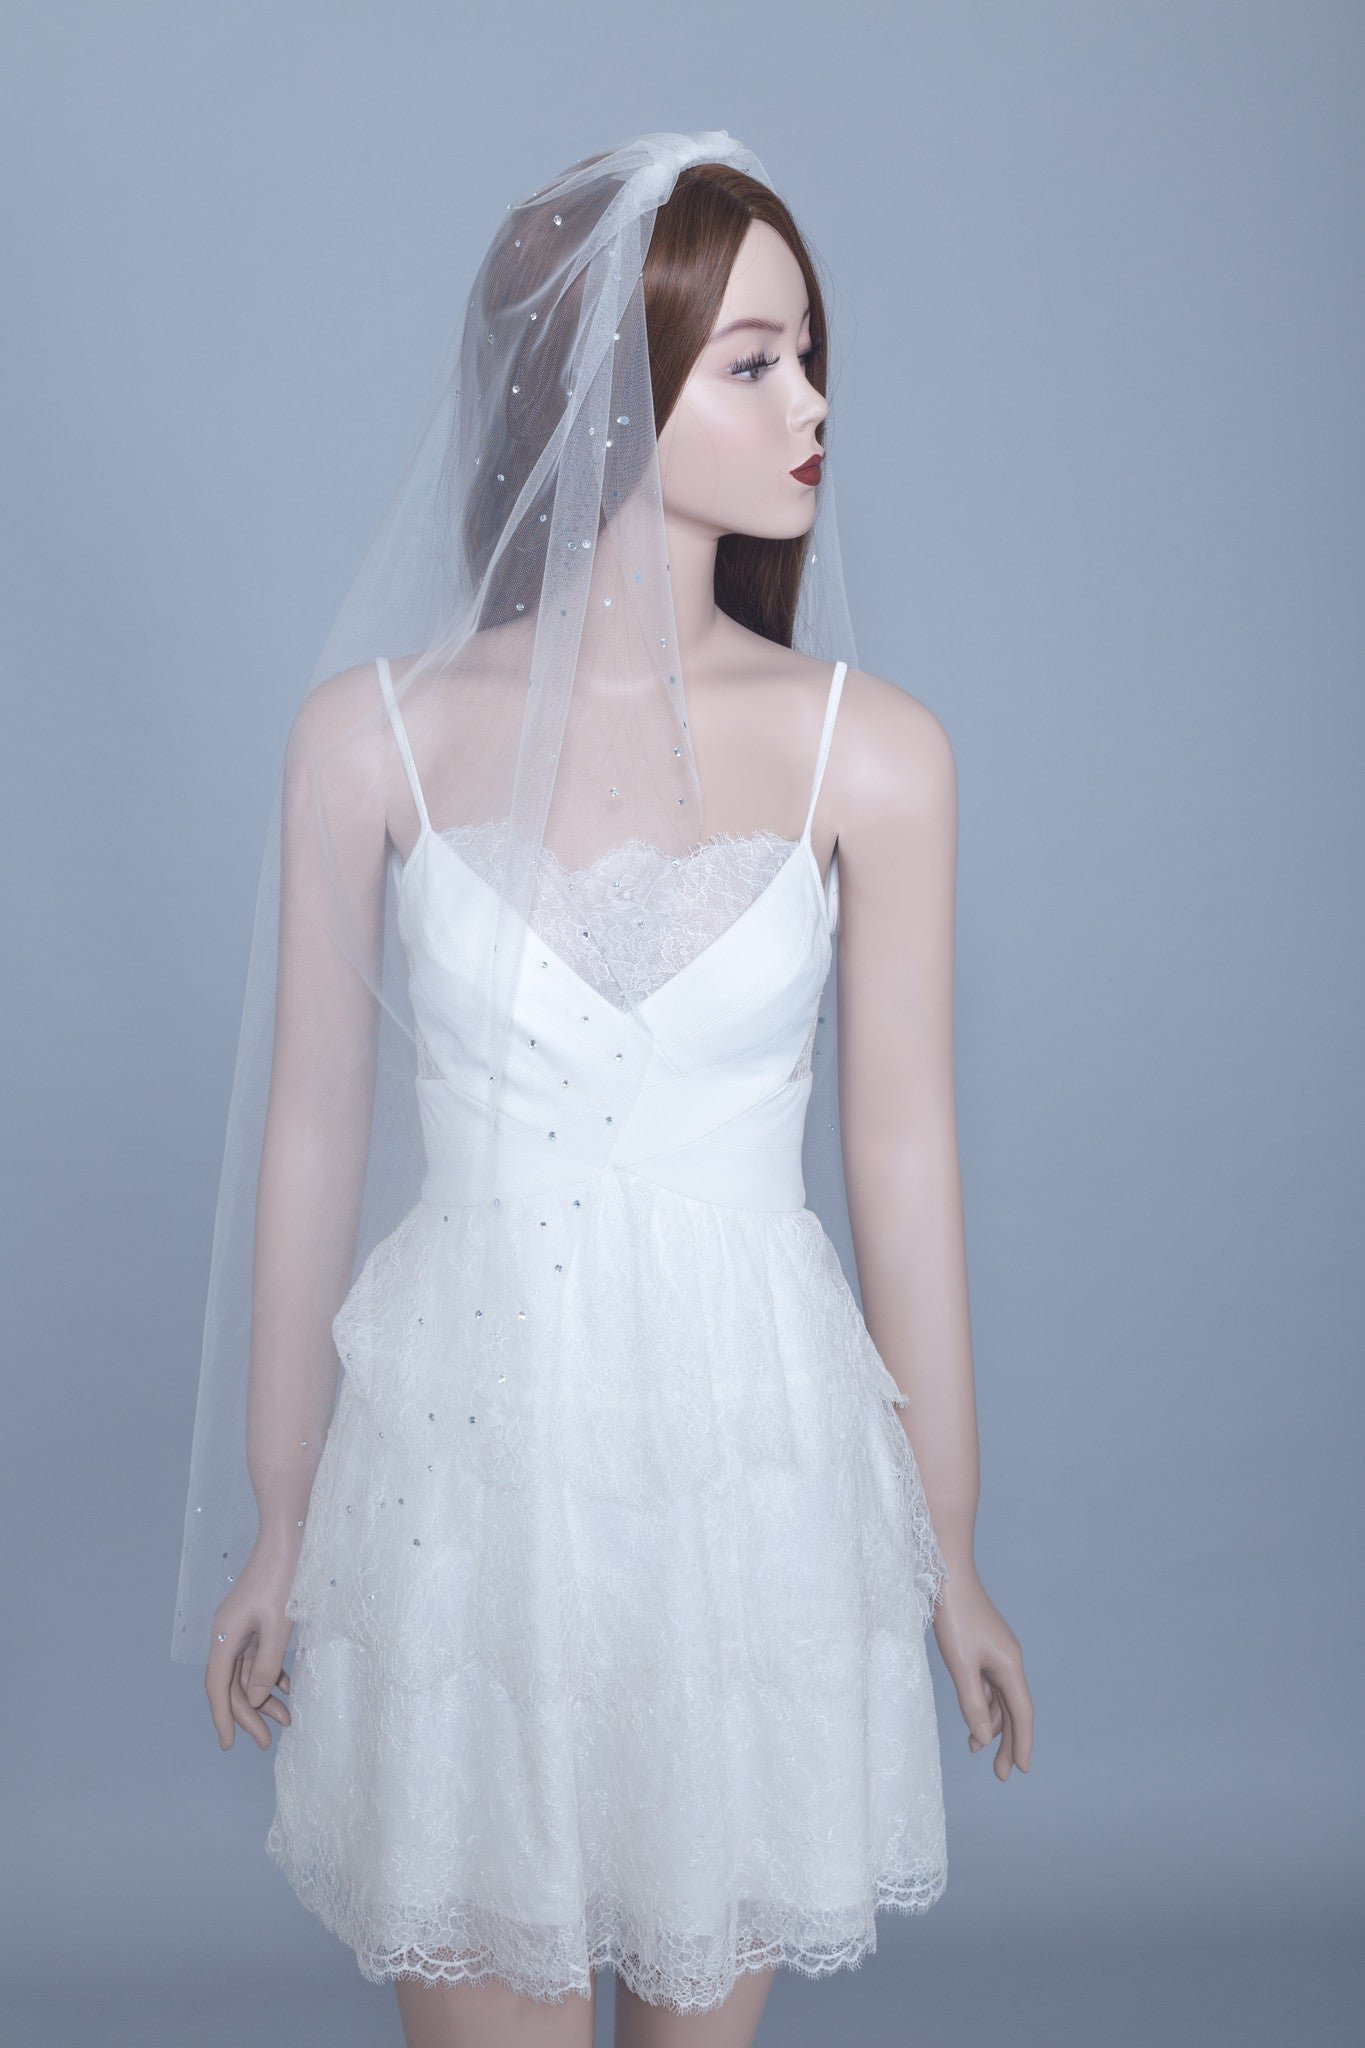 Swarovski Crystals Veil (#Gaia) - Dream Dresses by P.M.N  - 1